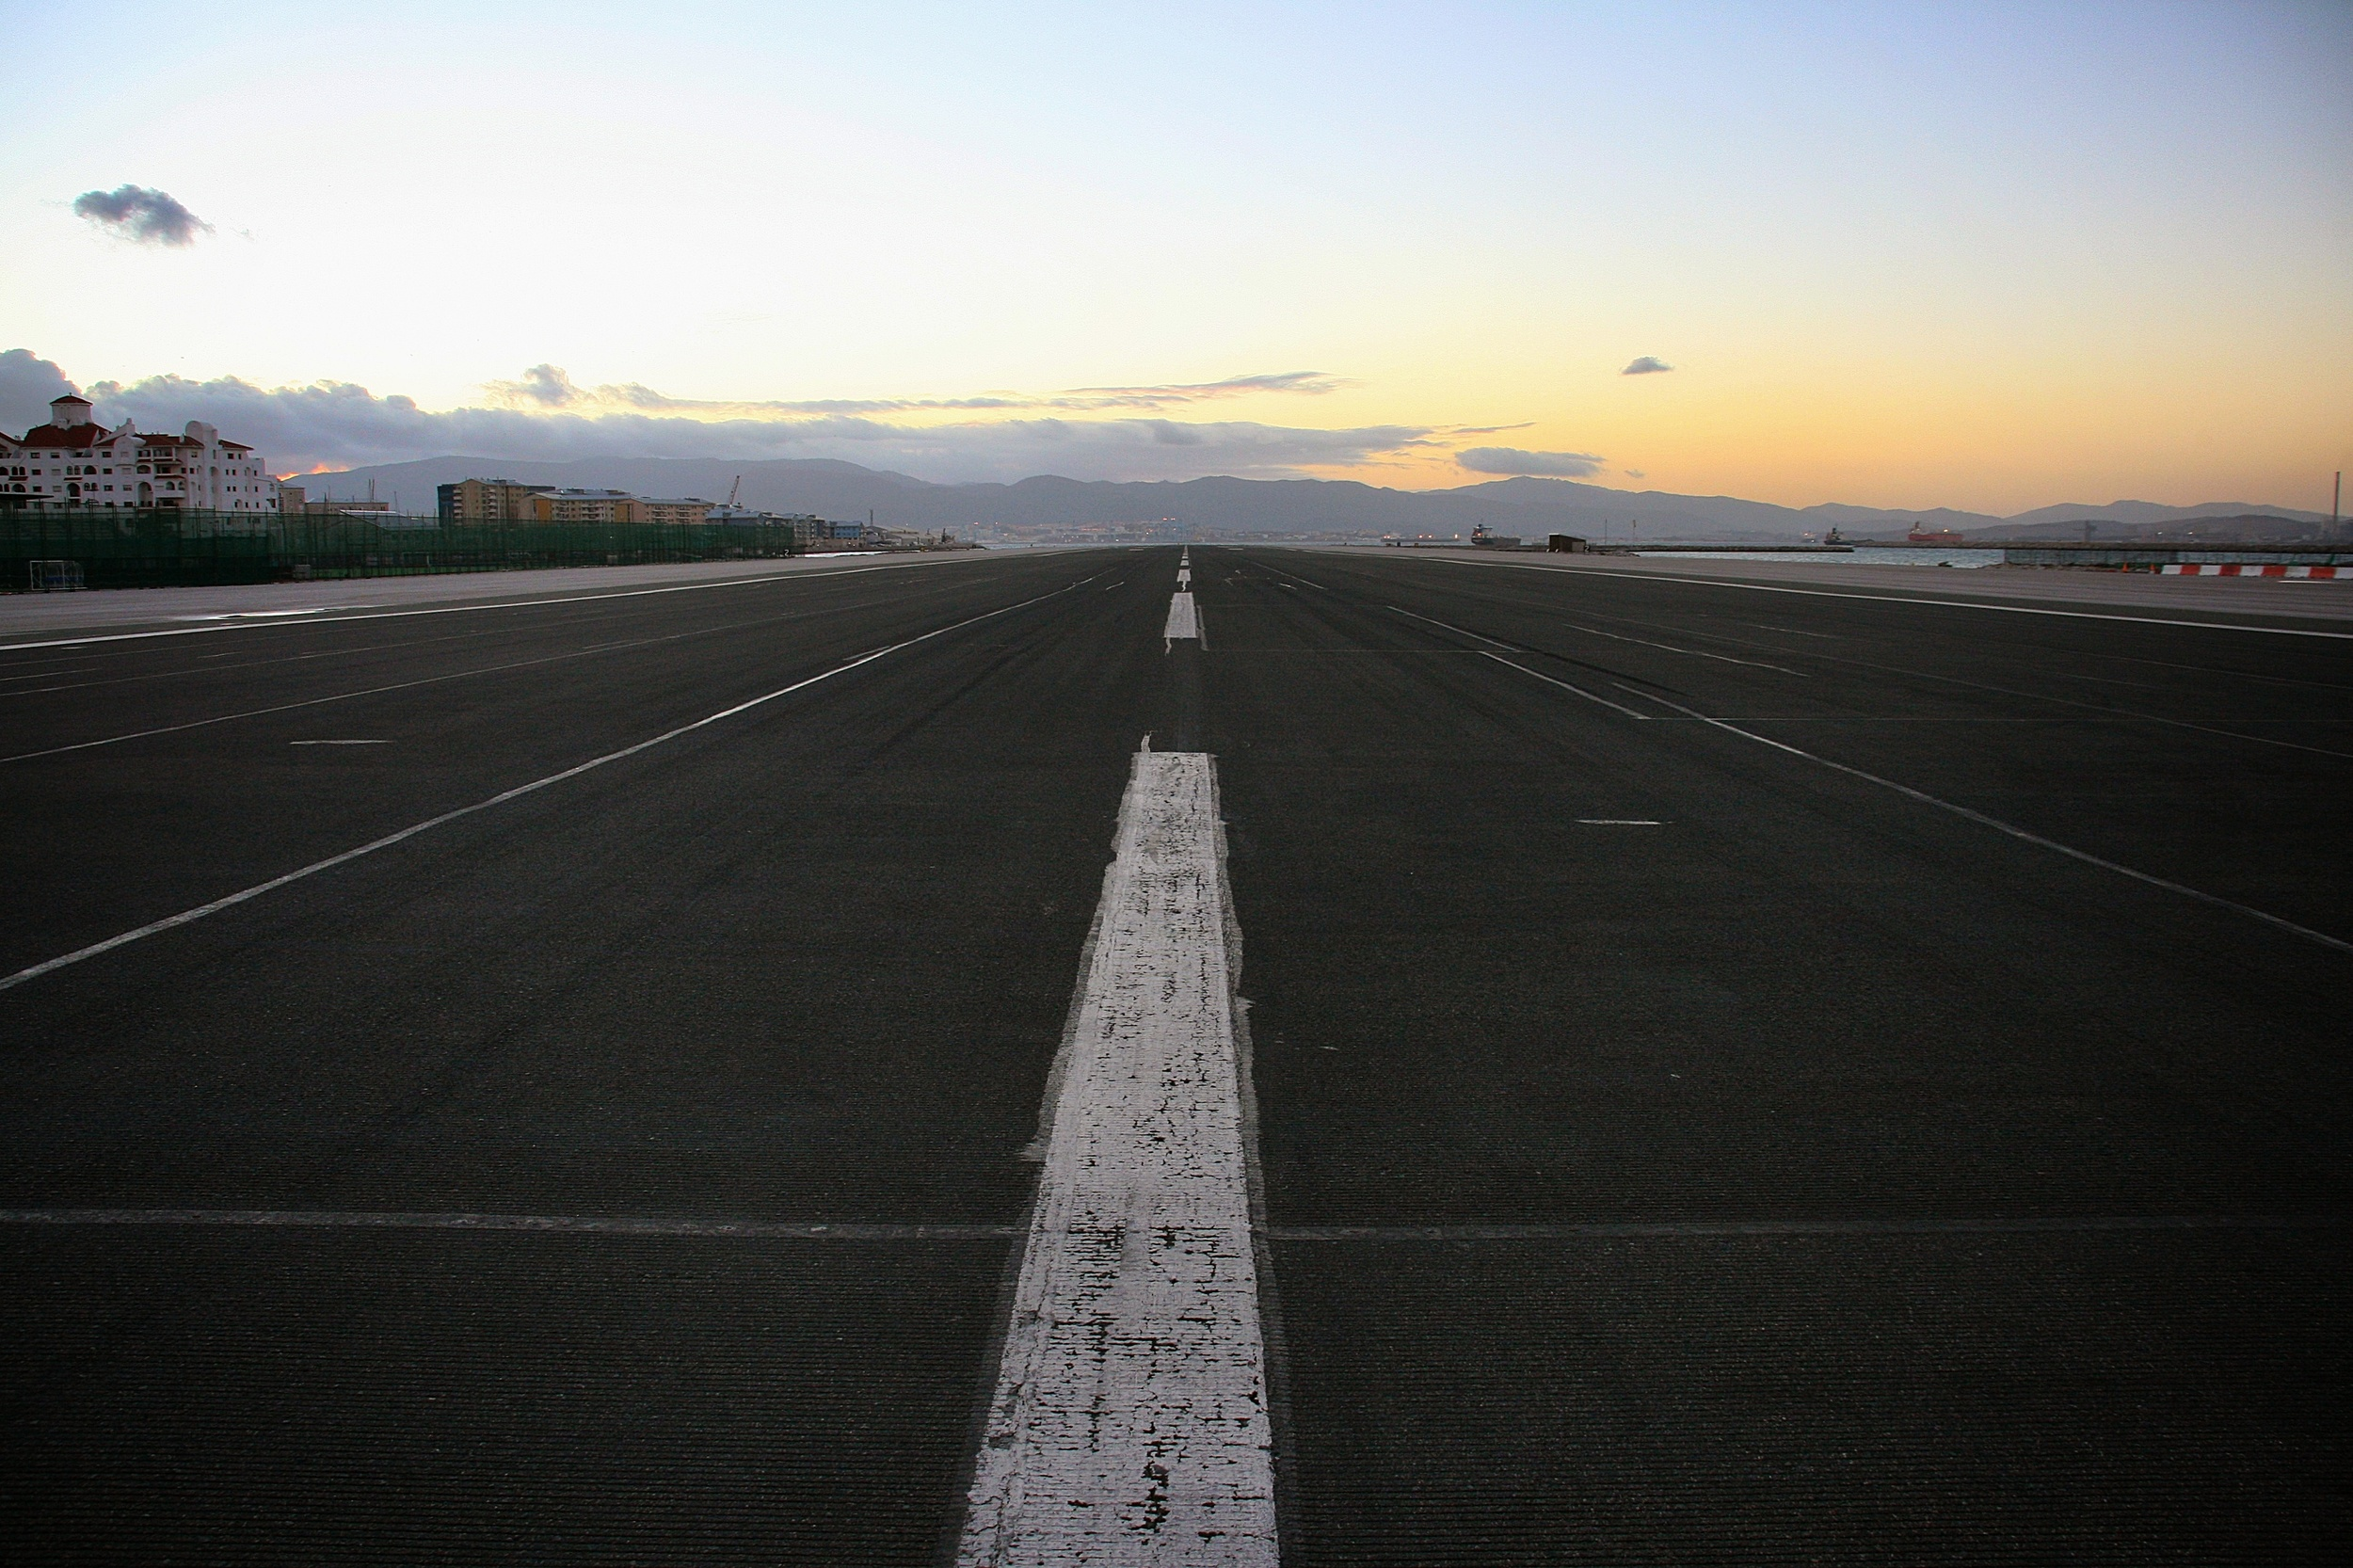 Gibraltar airport.  The only way of entering Gibraltar by land or by air is by crossing the main active runway.